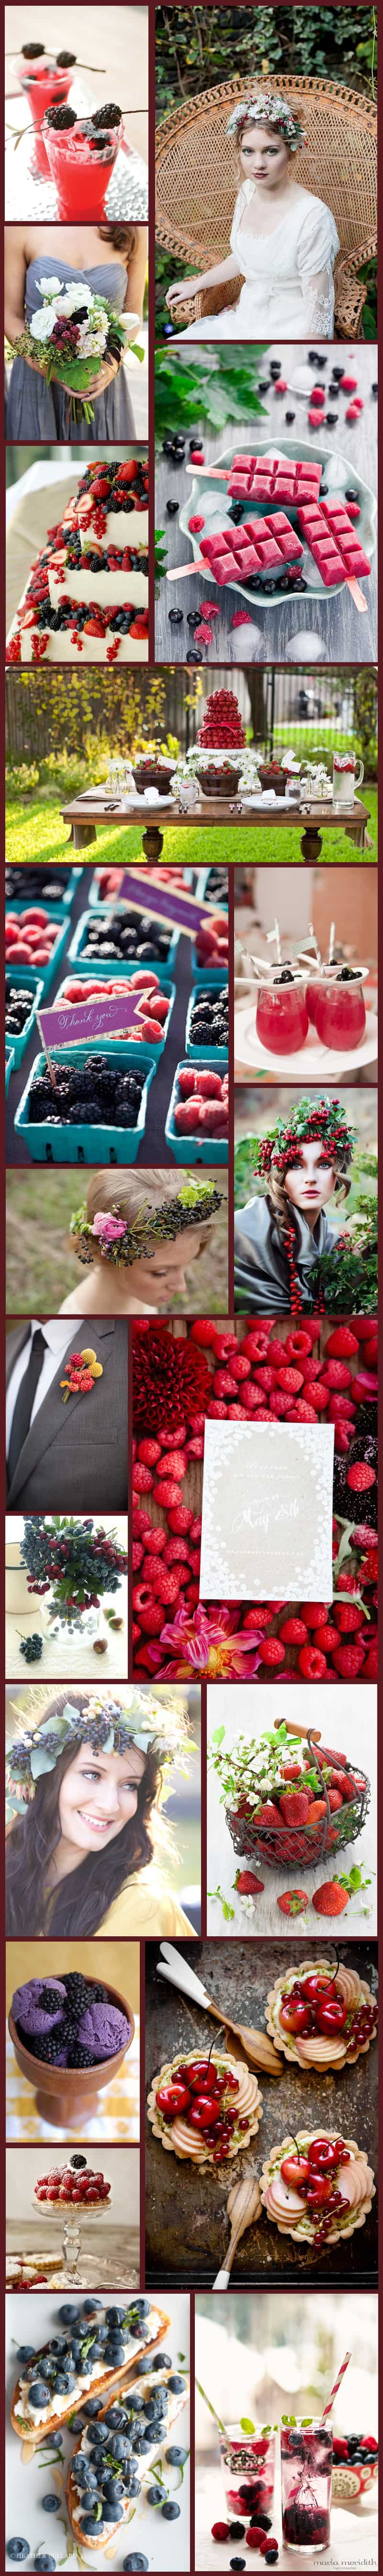 Berry Nice Inspiration Board